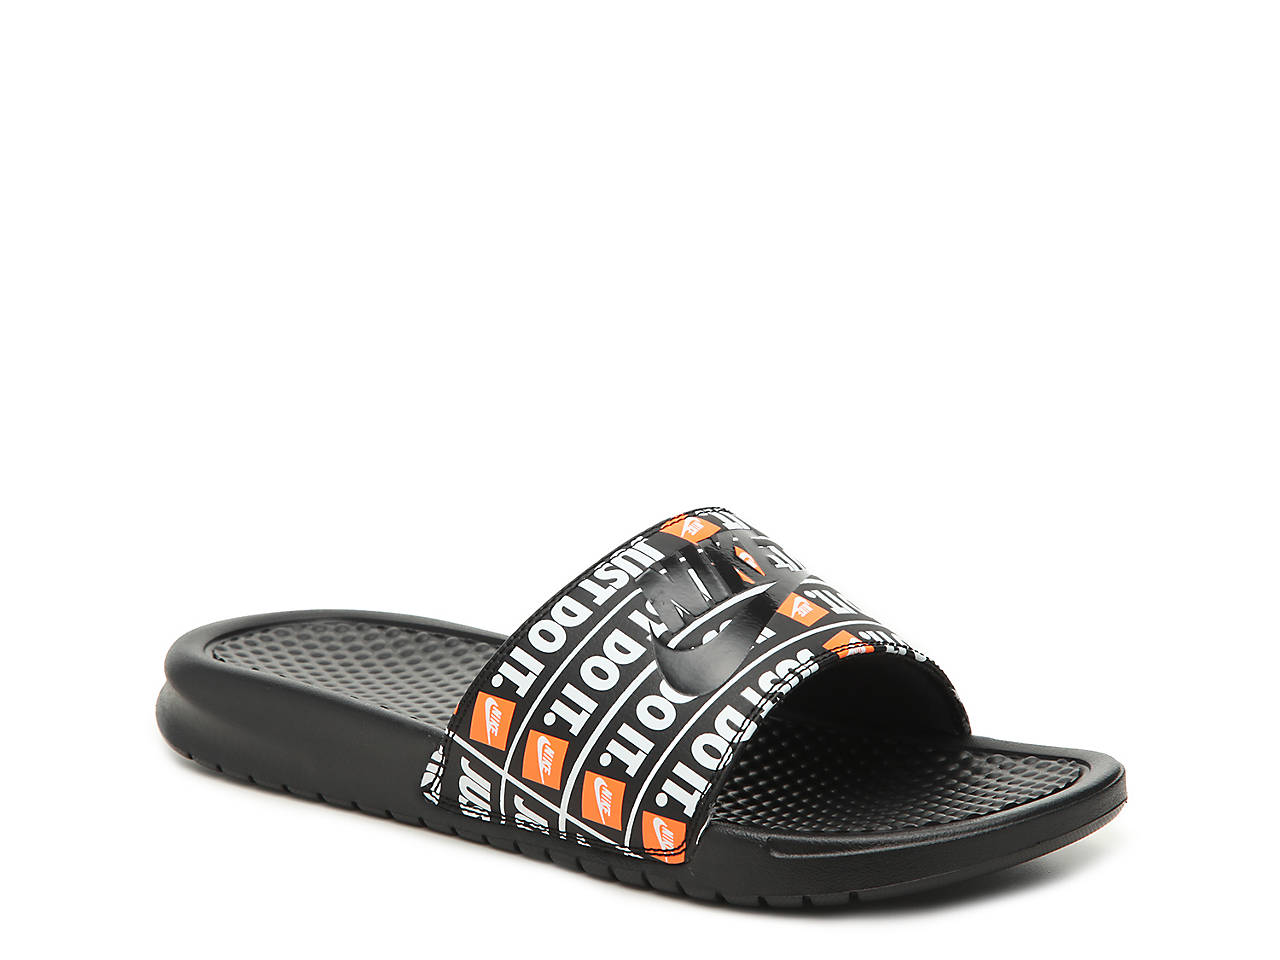 outlet store b262a 576ab Nike. Benassi Just Do It Slide ...